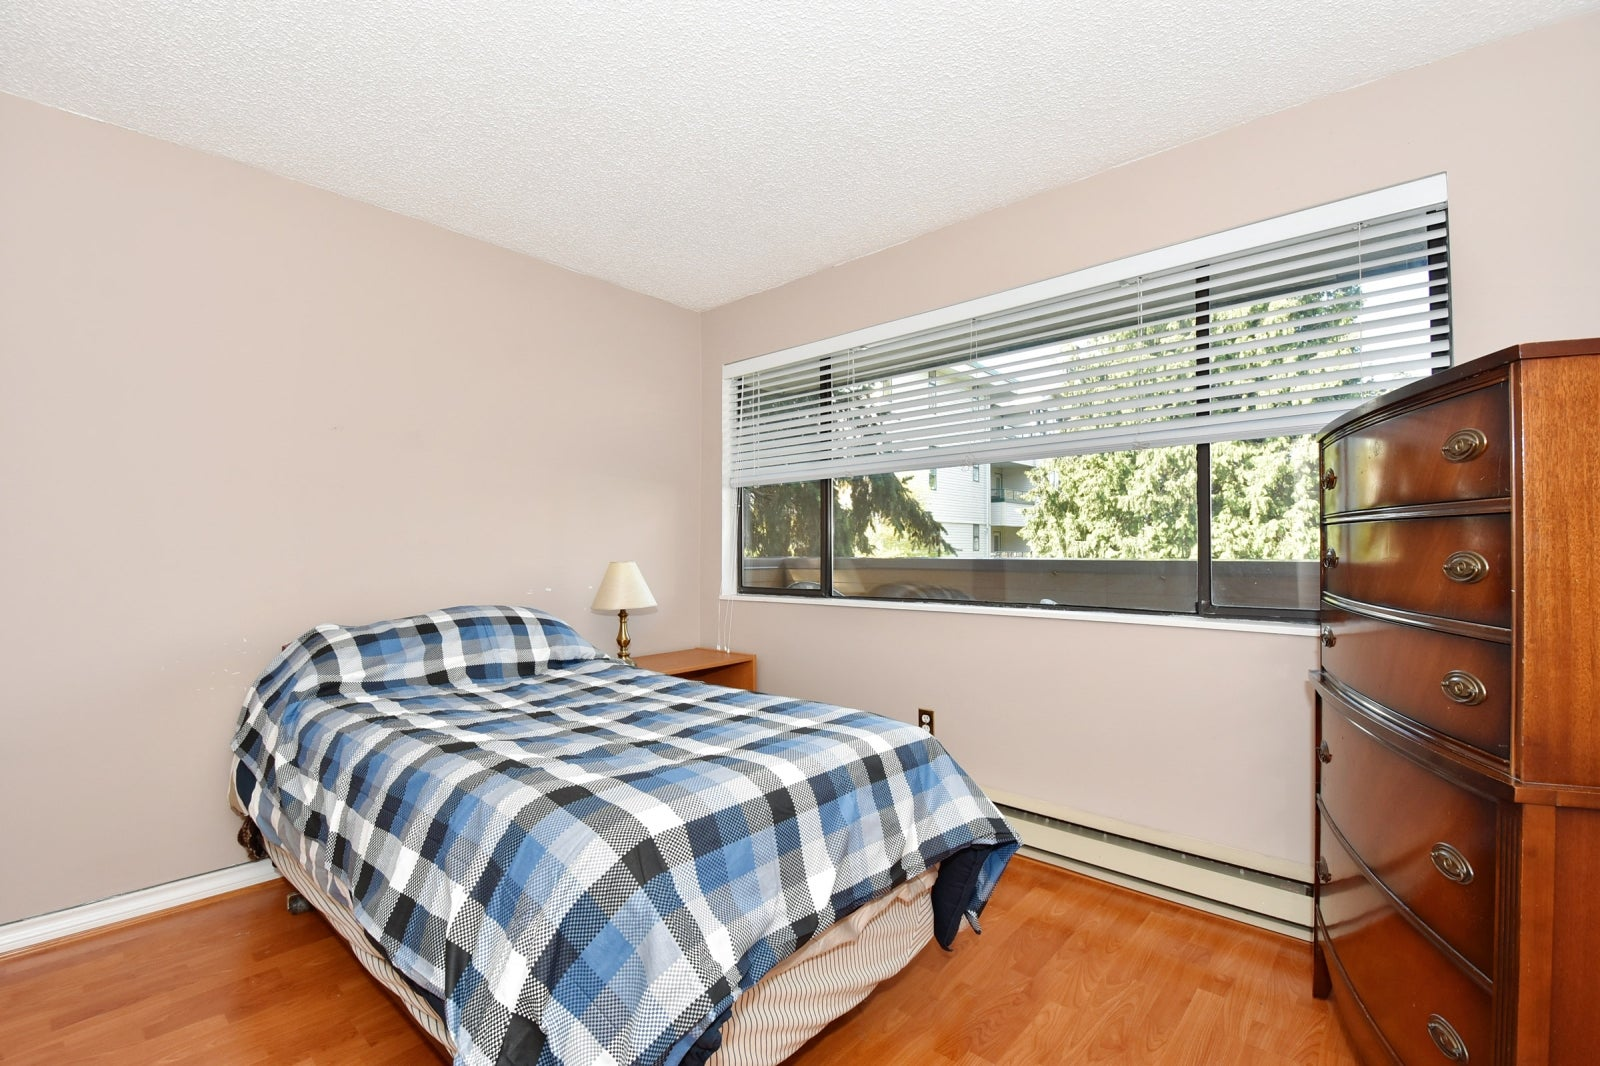 168 7293 MOFFATT ROAD - Brighouse South Apartment/Condo for sale, 2 Bedrooms (R2261480) #17